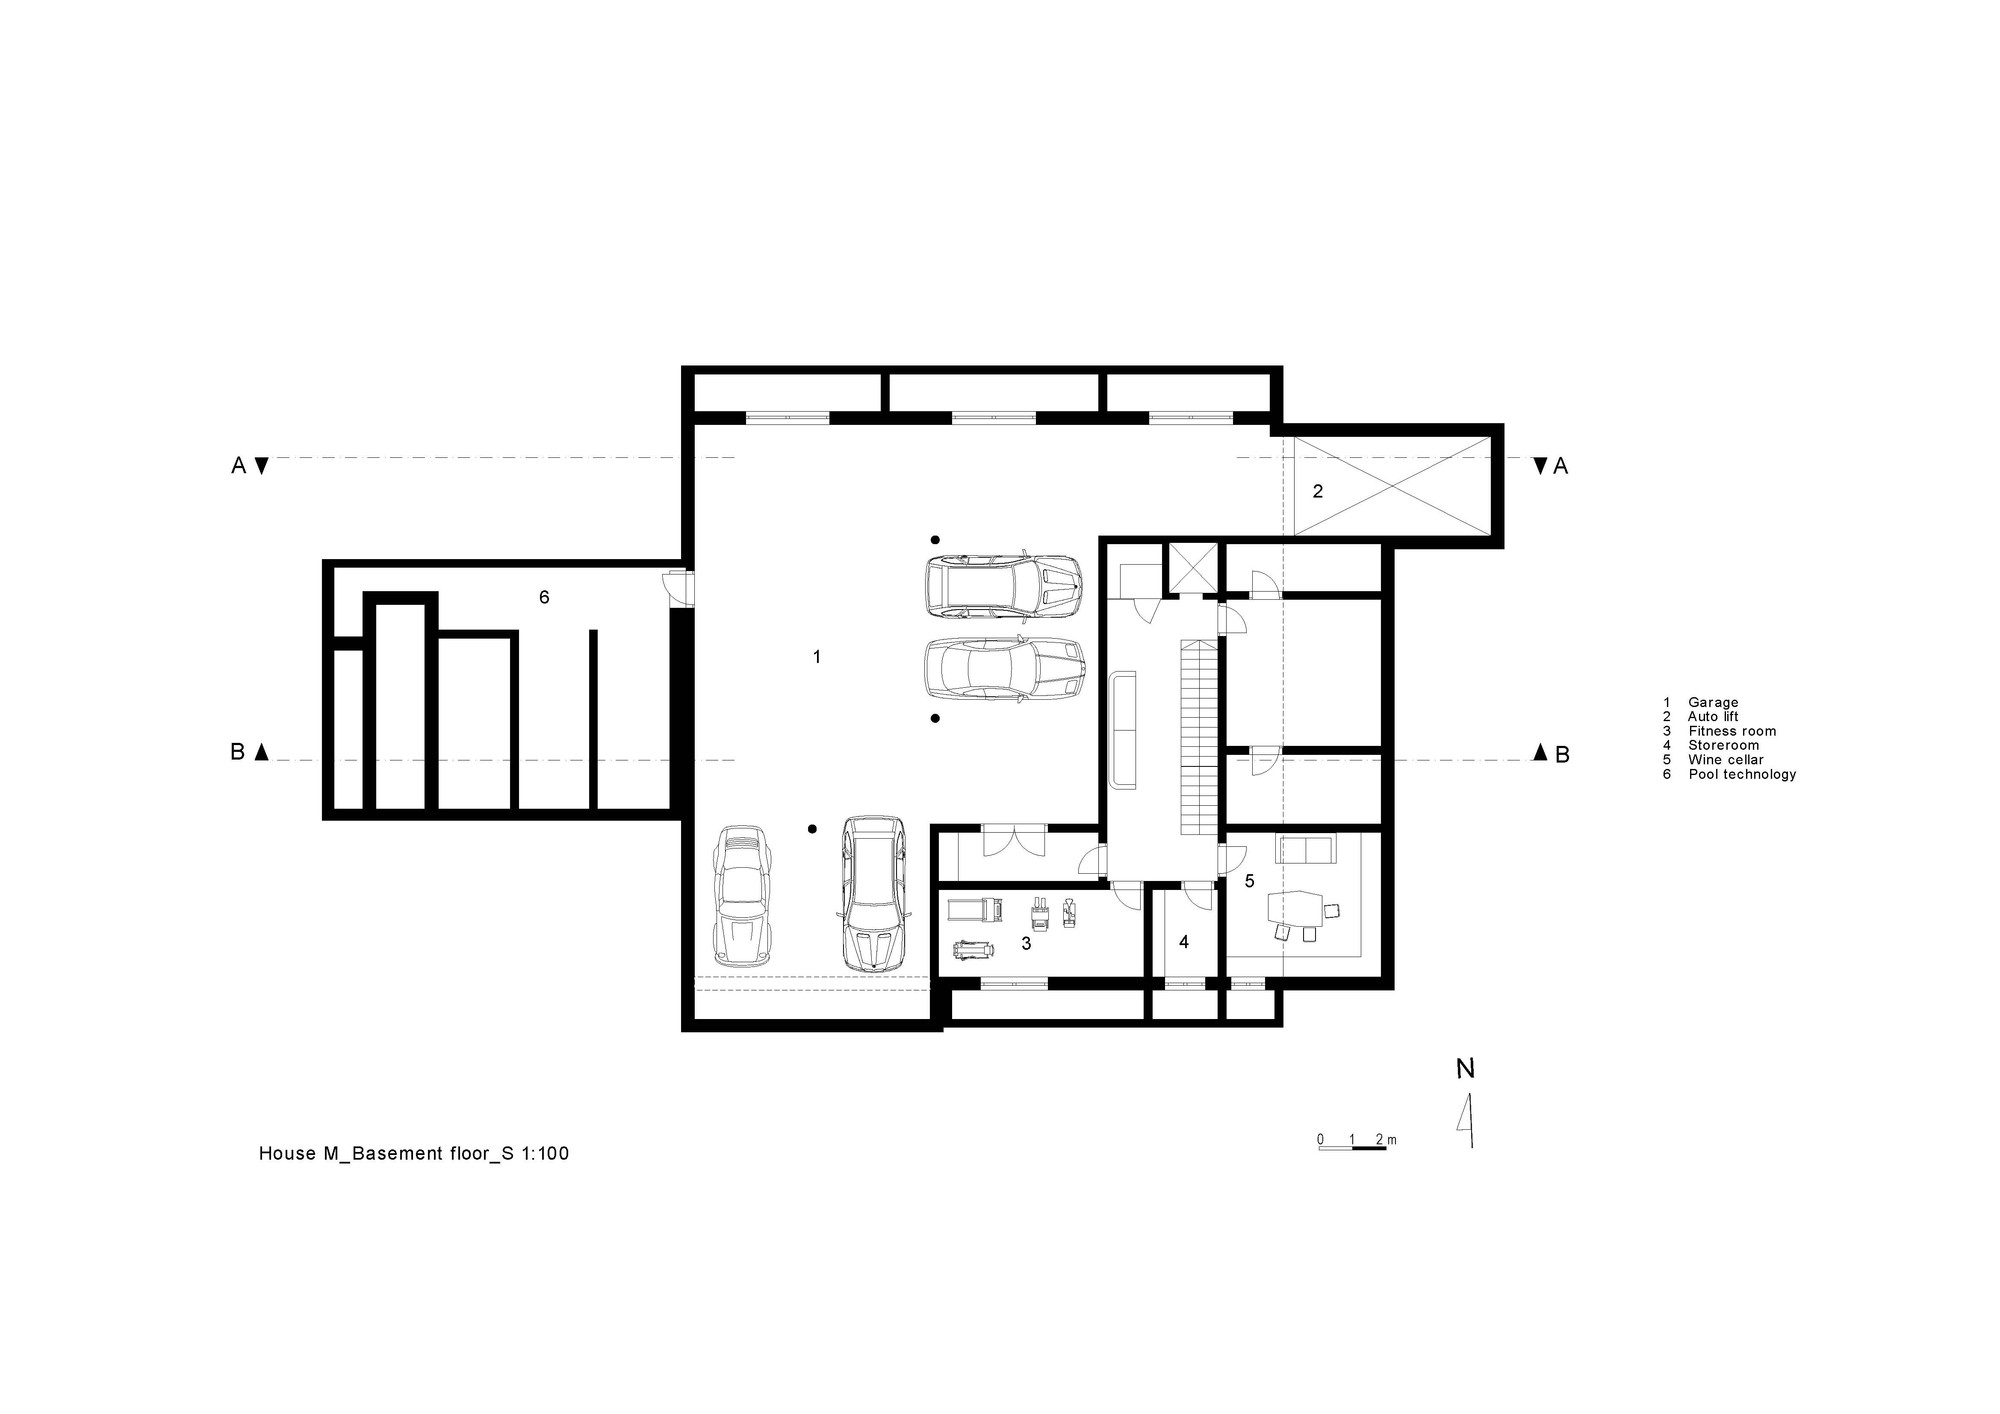 Gallery of house m monovolume architecture design 42 - Easy transitional home design ...